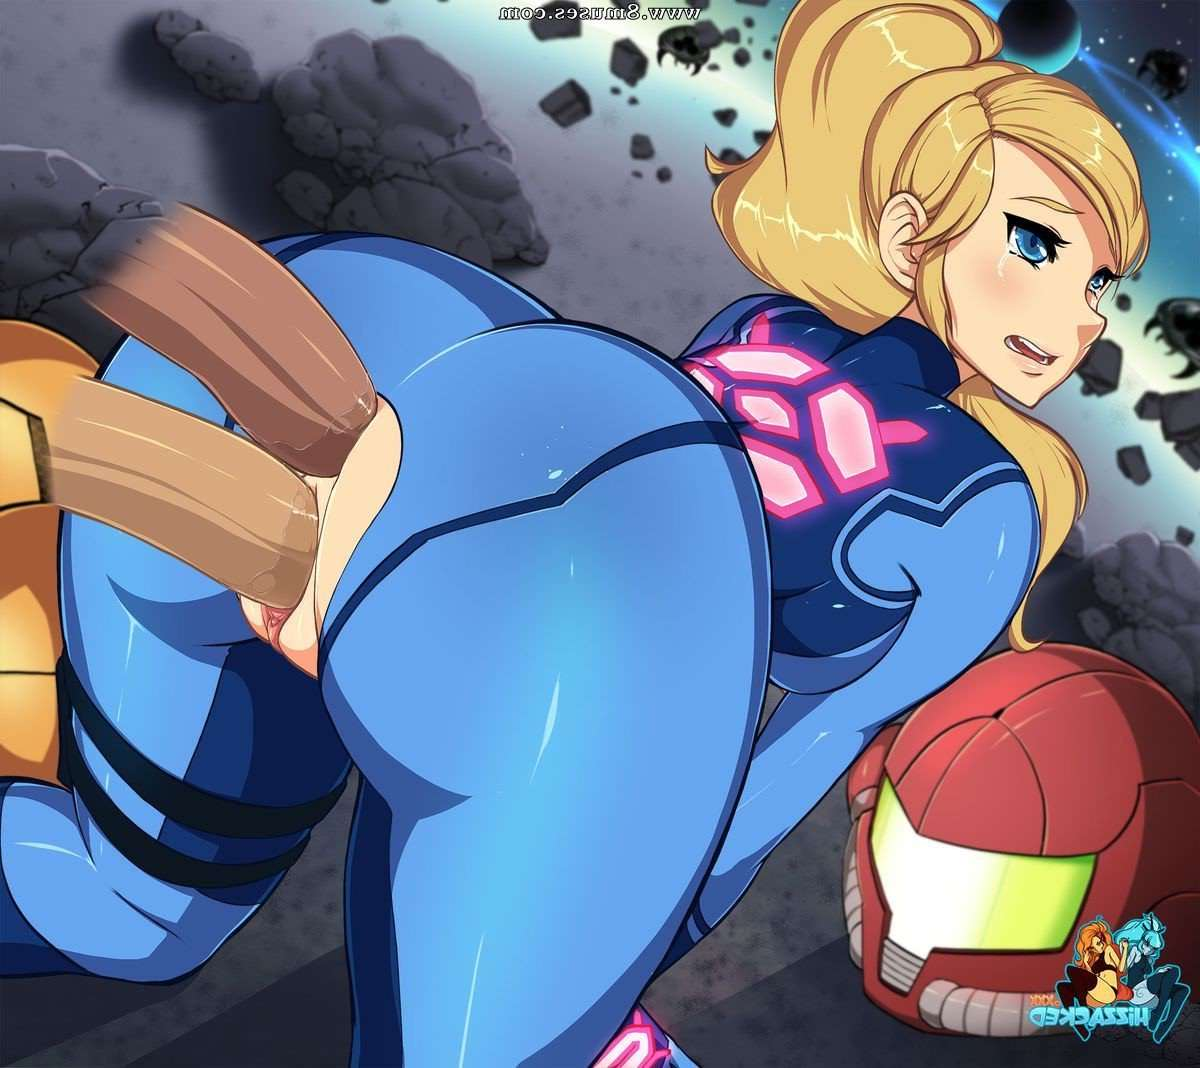 Hizzacked-Comics/Zero-Suit-Samus Zero_Suit_Samus__8muses_-_Sex_and_Porn_Comics_6.jpg